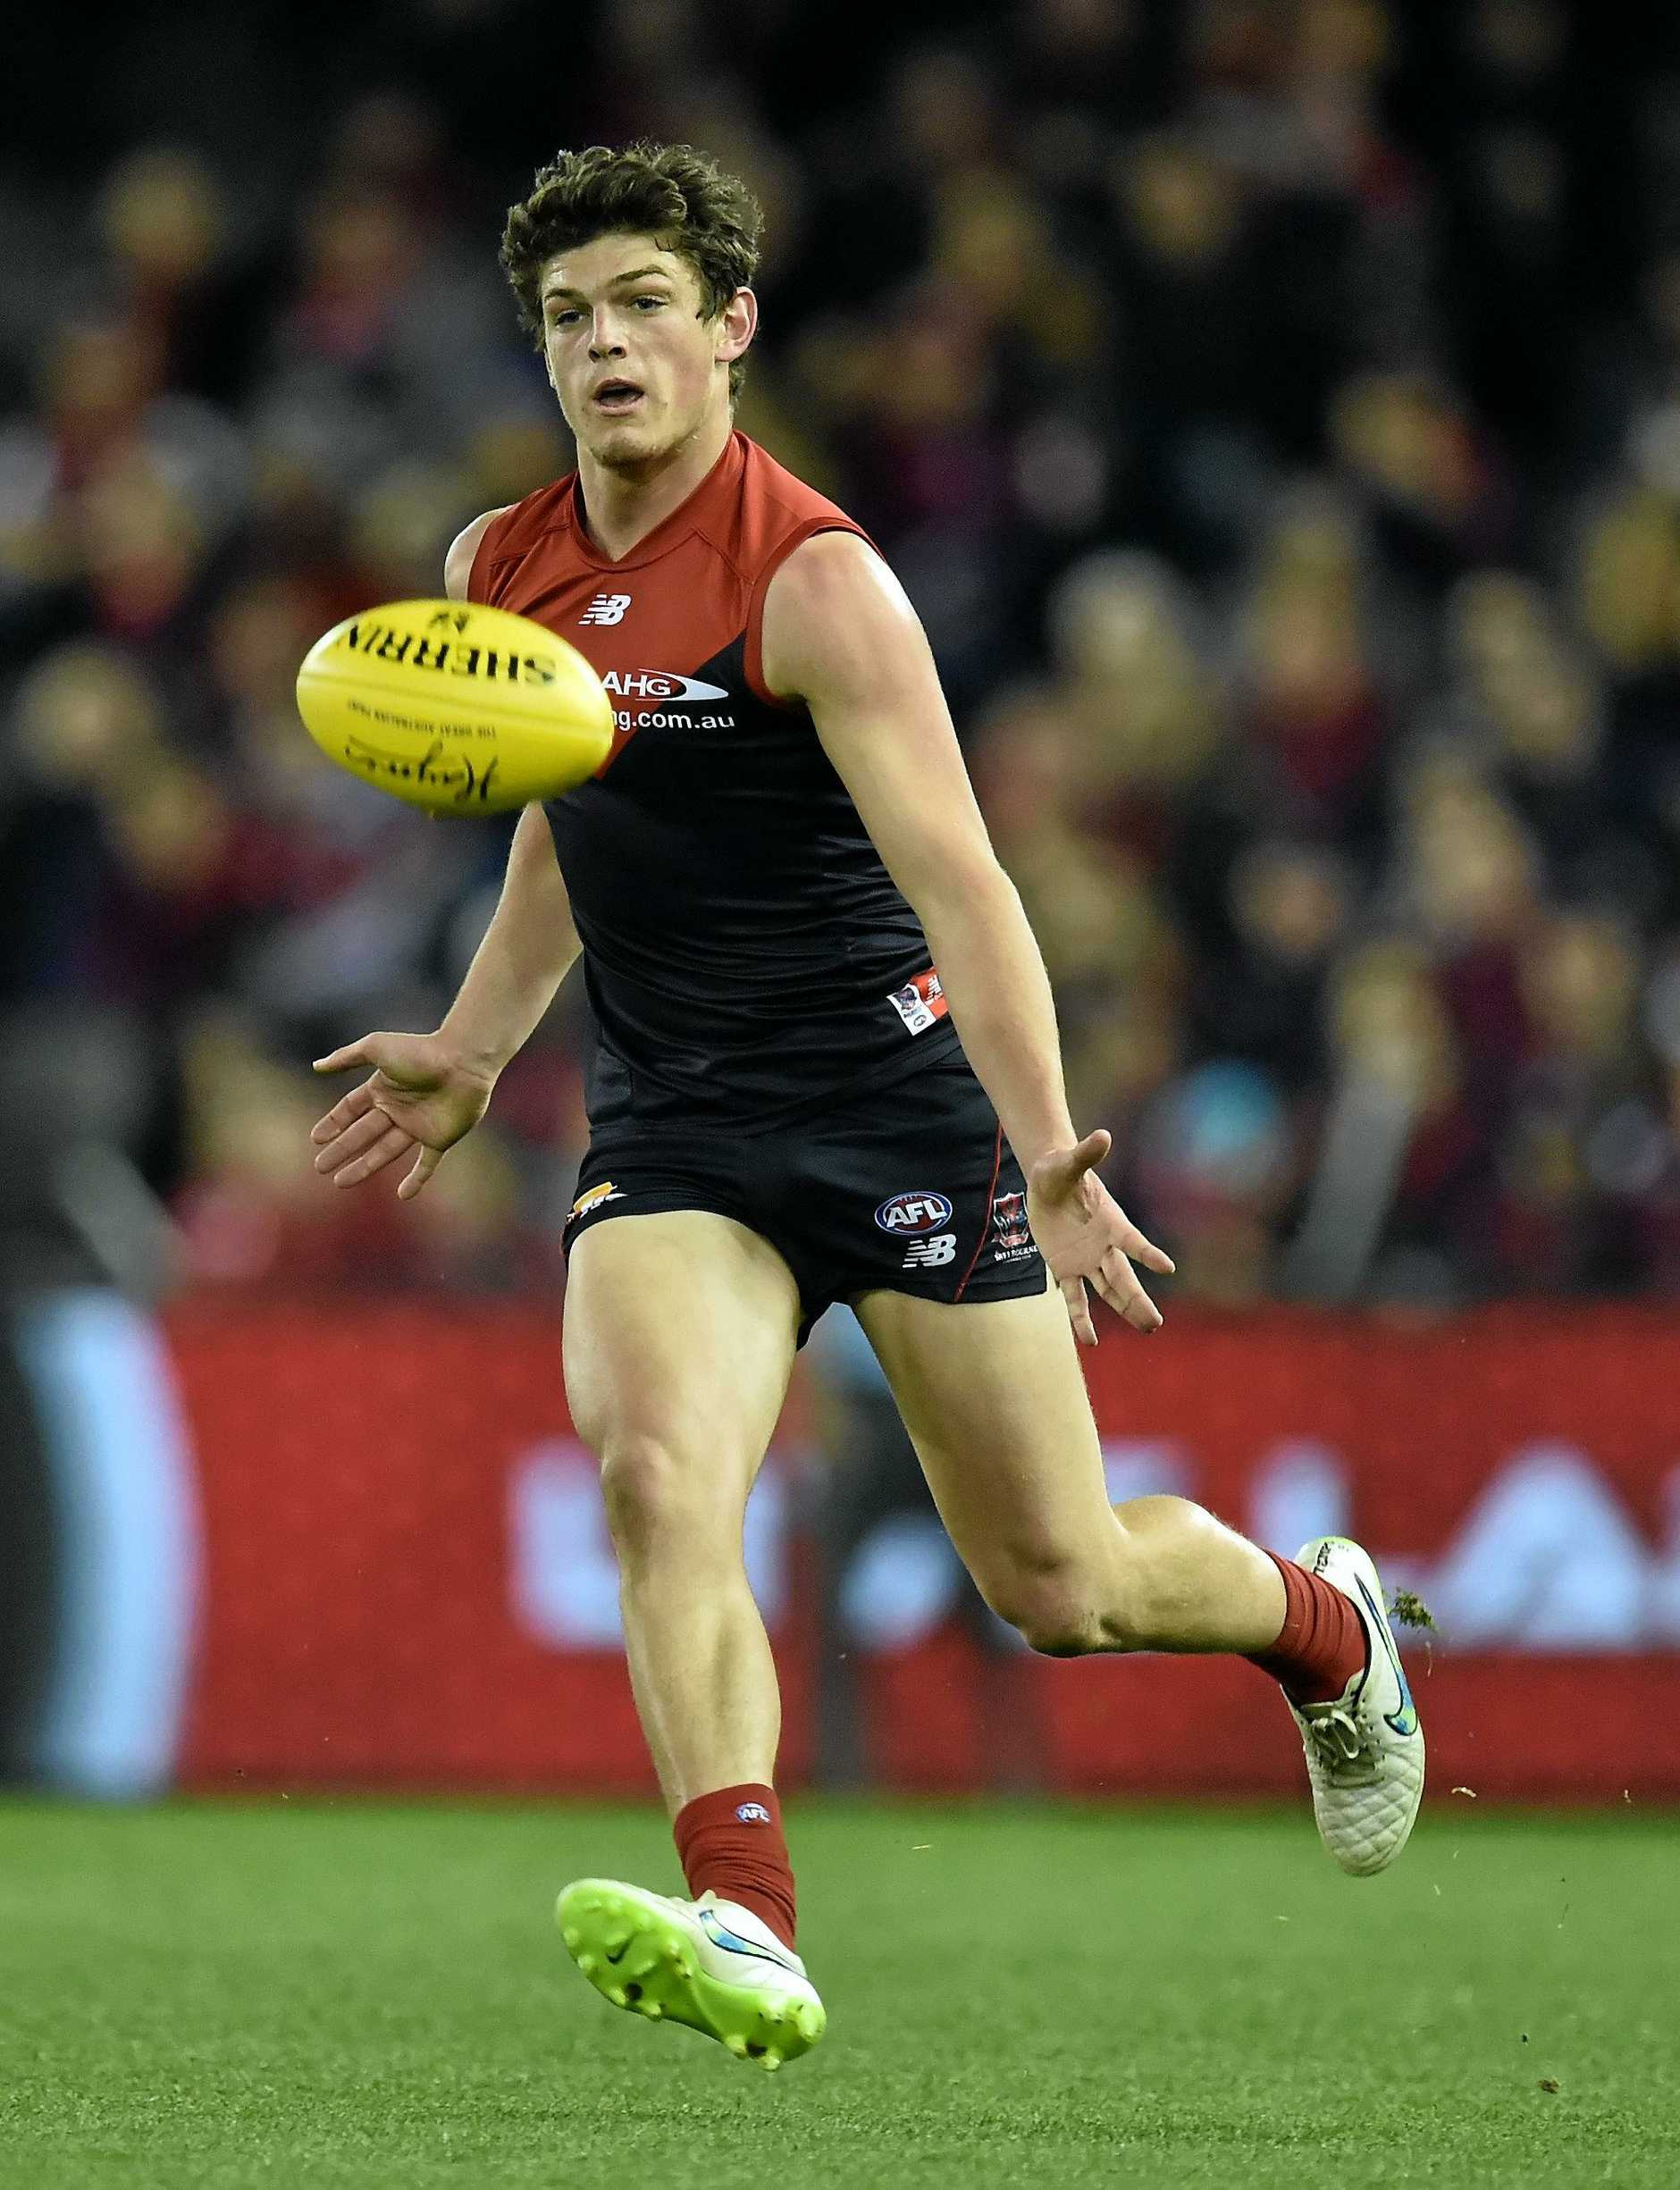 MIDFIELDER: Melbourne Demons player Angus Brayshaw in action.